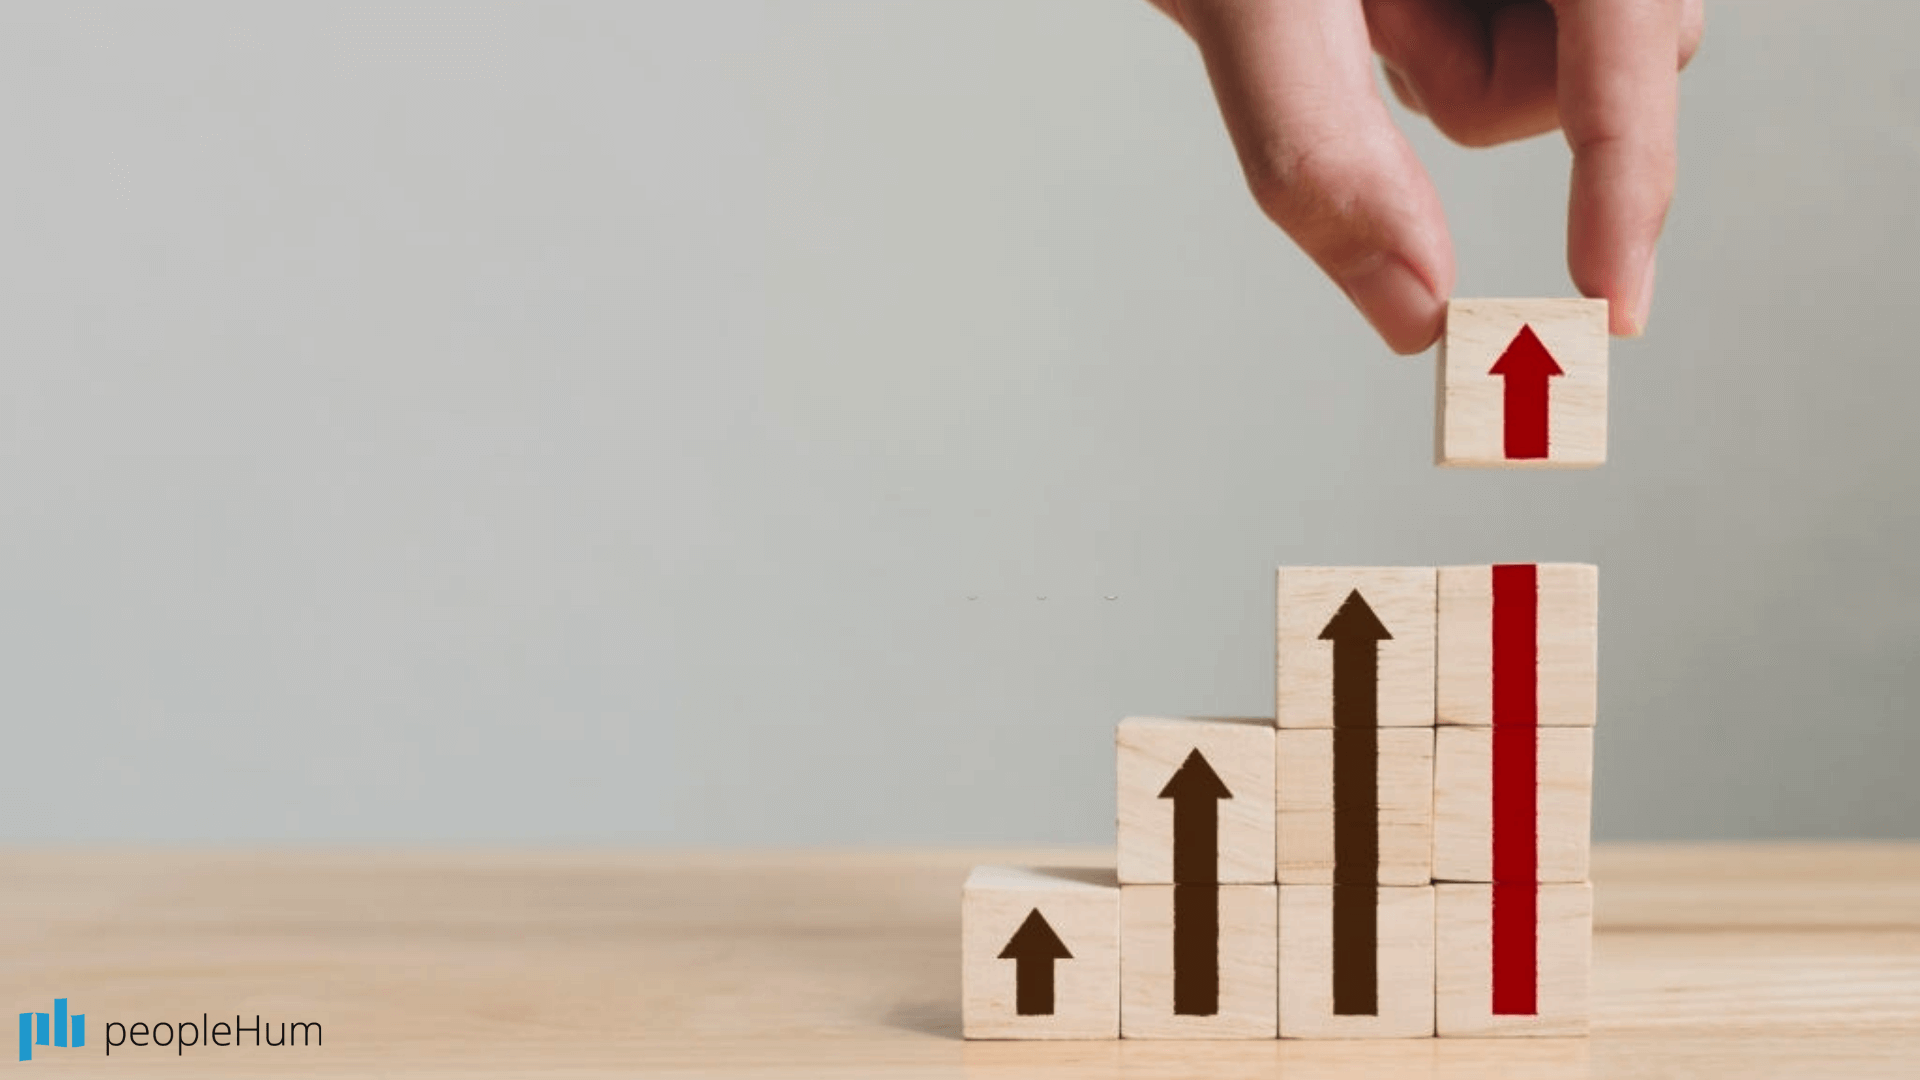 4 ways to improve workforce performance for little cost